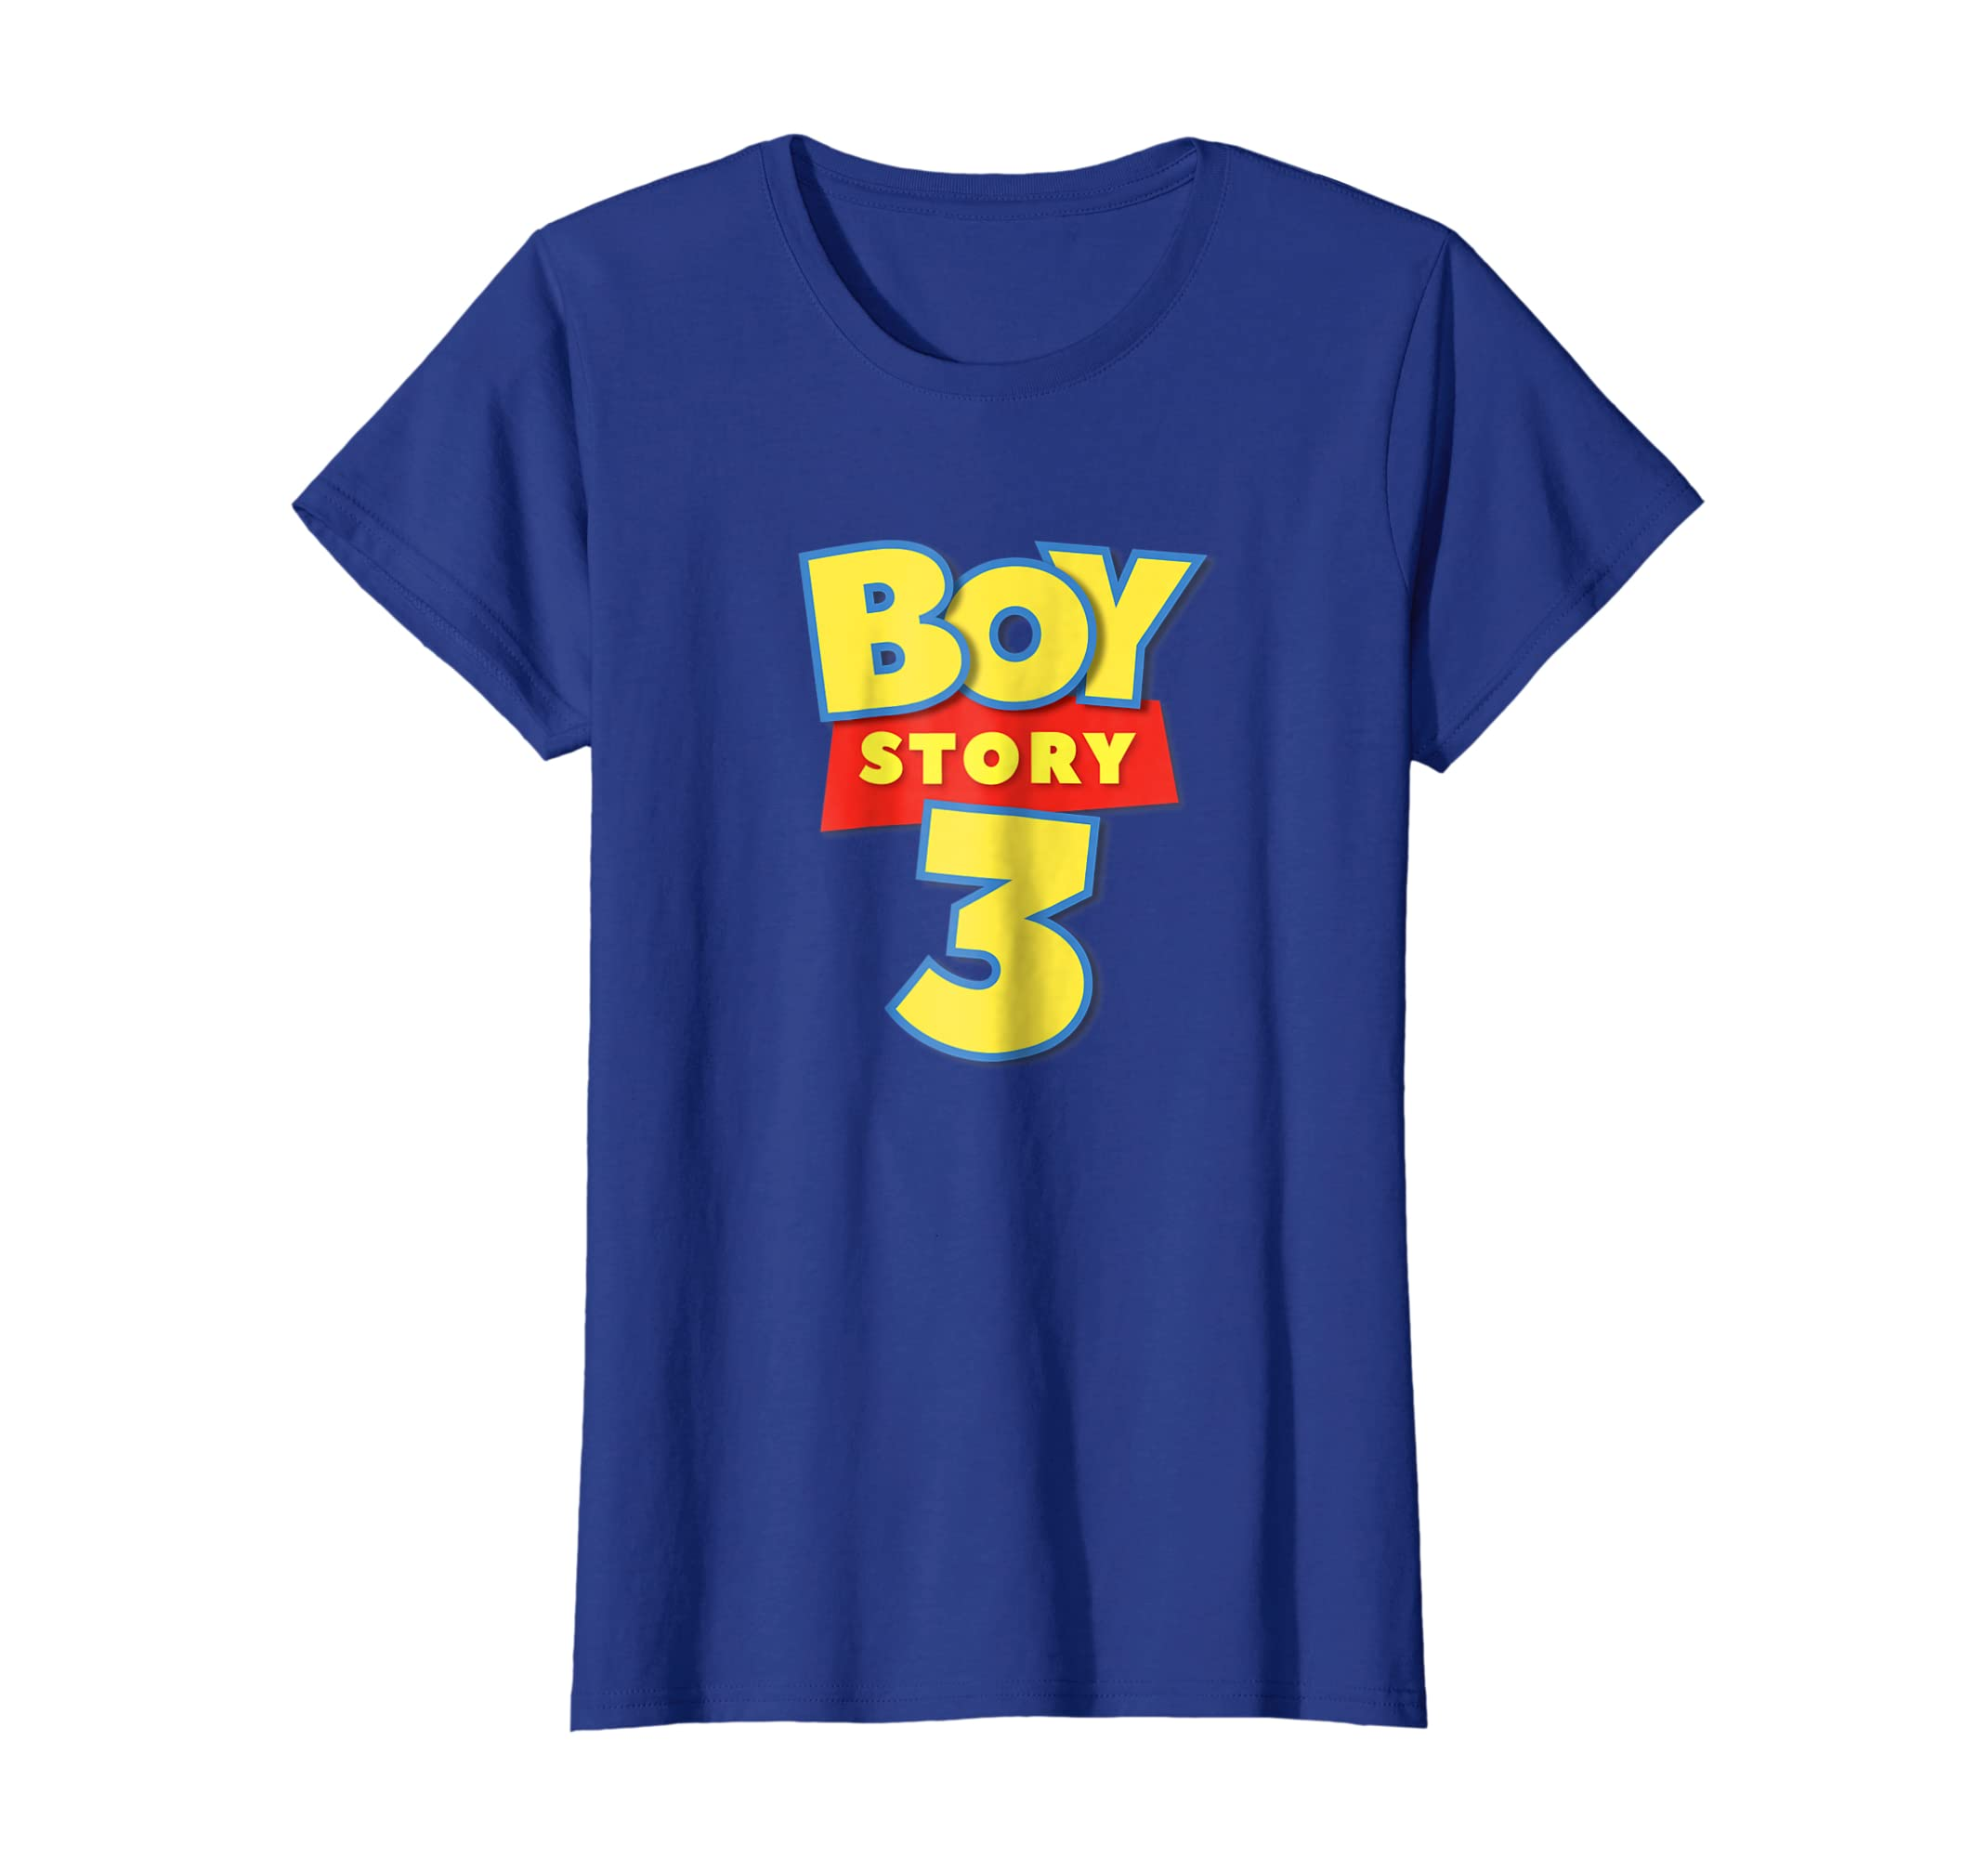 Amazon Toy Themed Boy Story 3 Year Old Birthday Party T Shirt Clothing